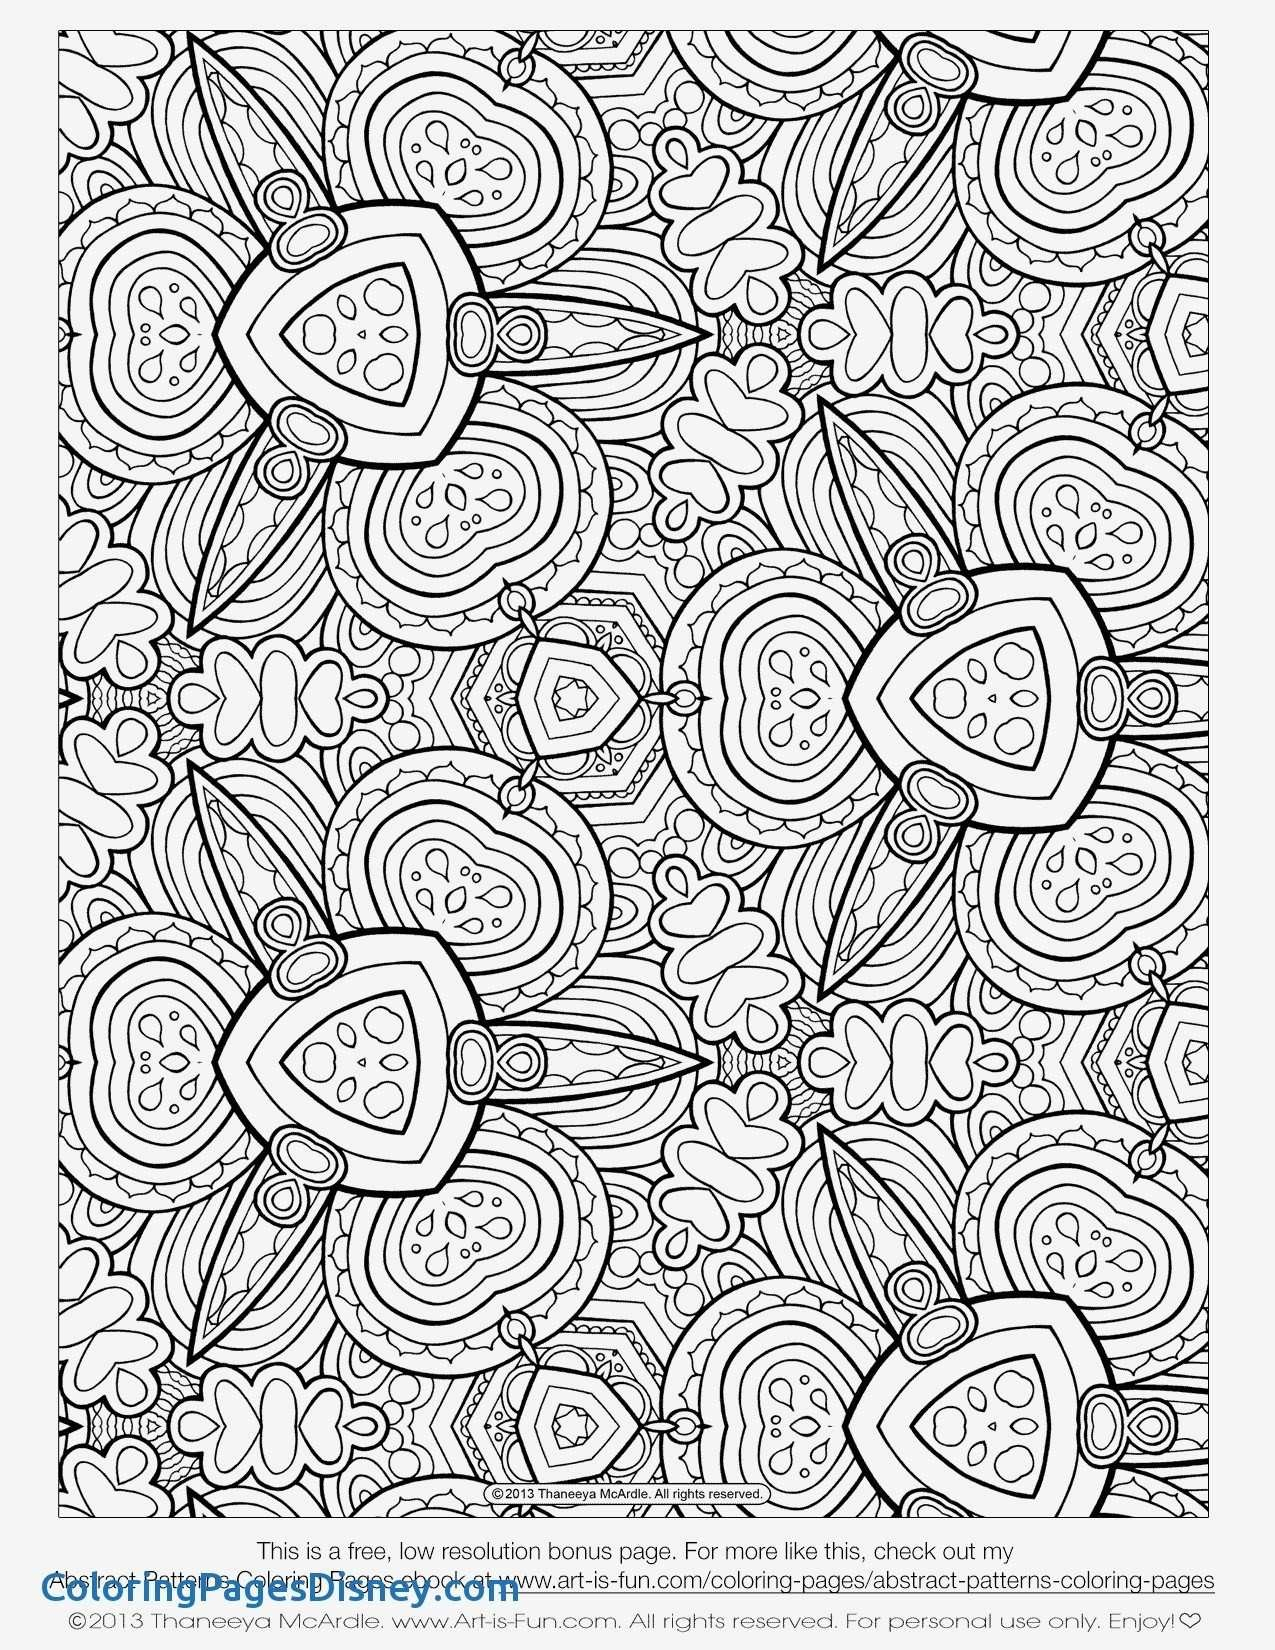 All About Me Coloring Pages Mattel Coloring Pages Best Of All About Me Coloring Pages Fresh